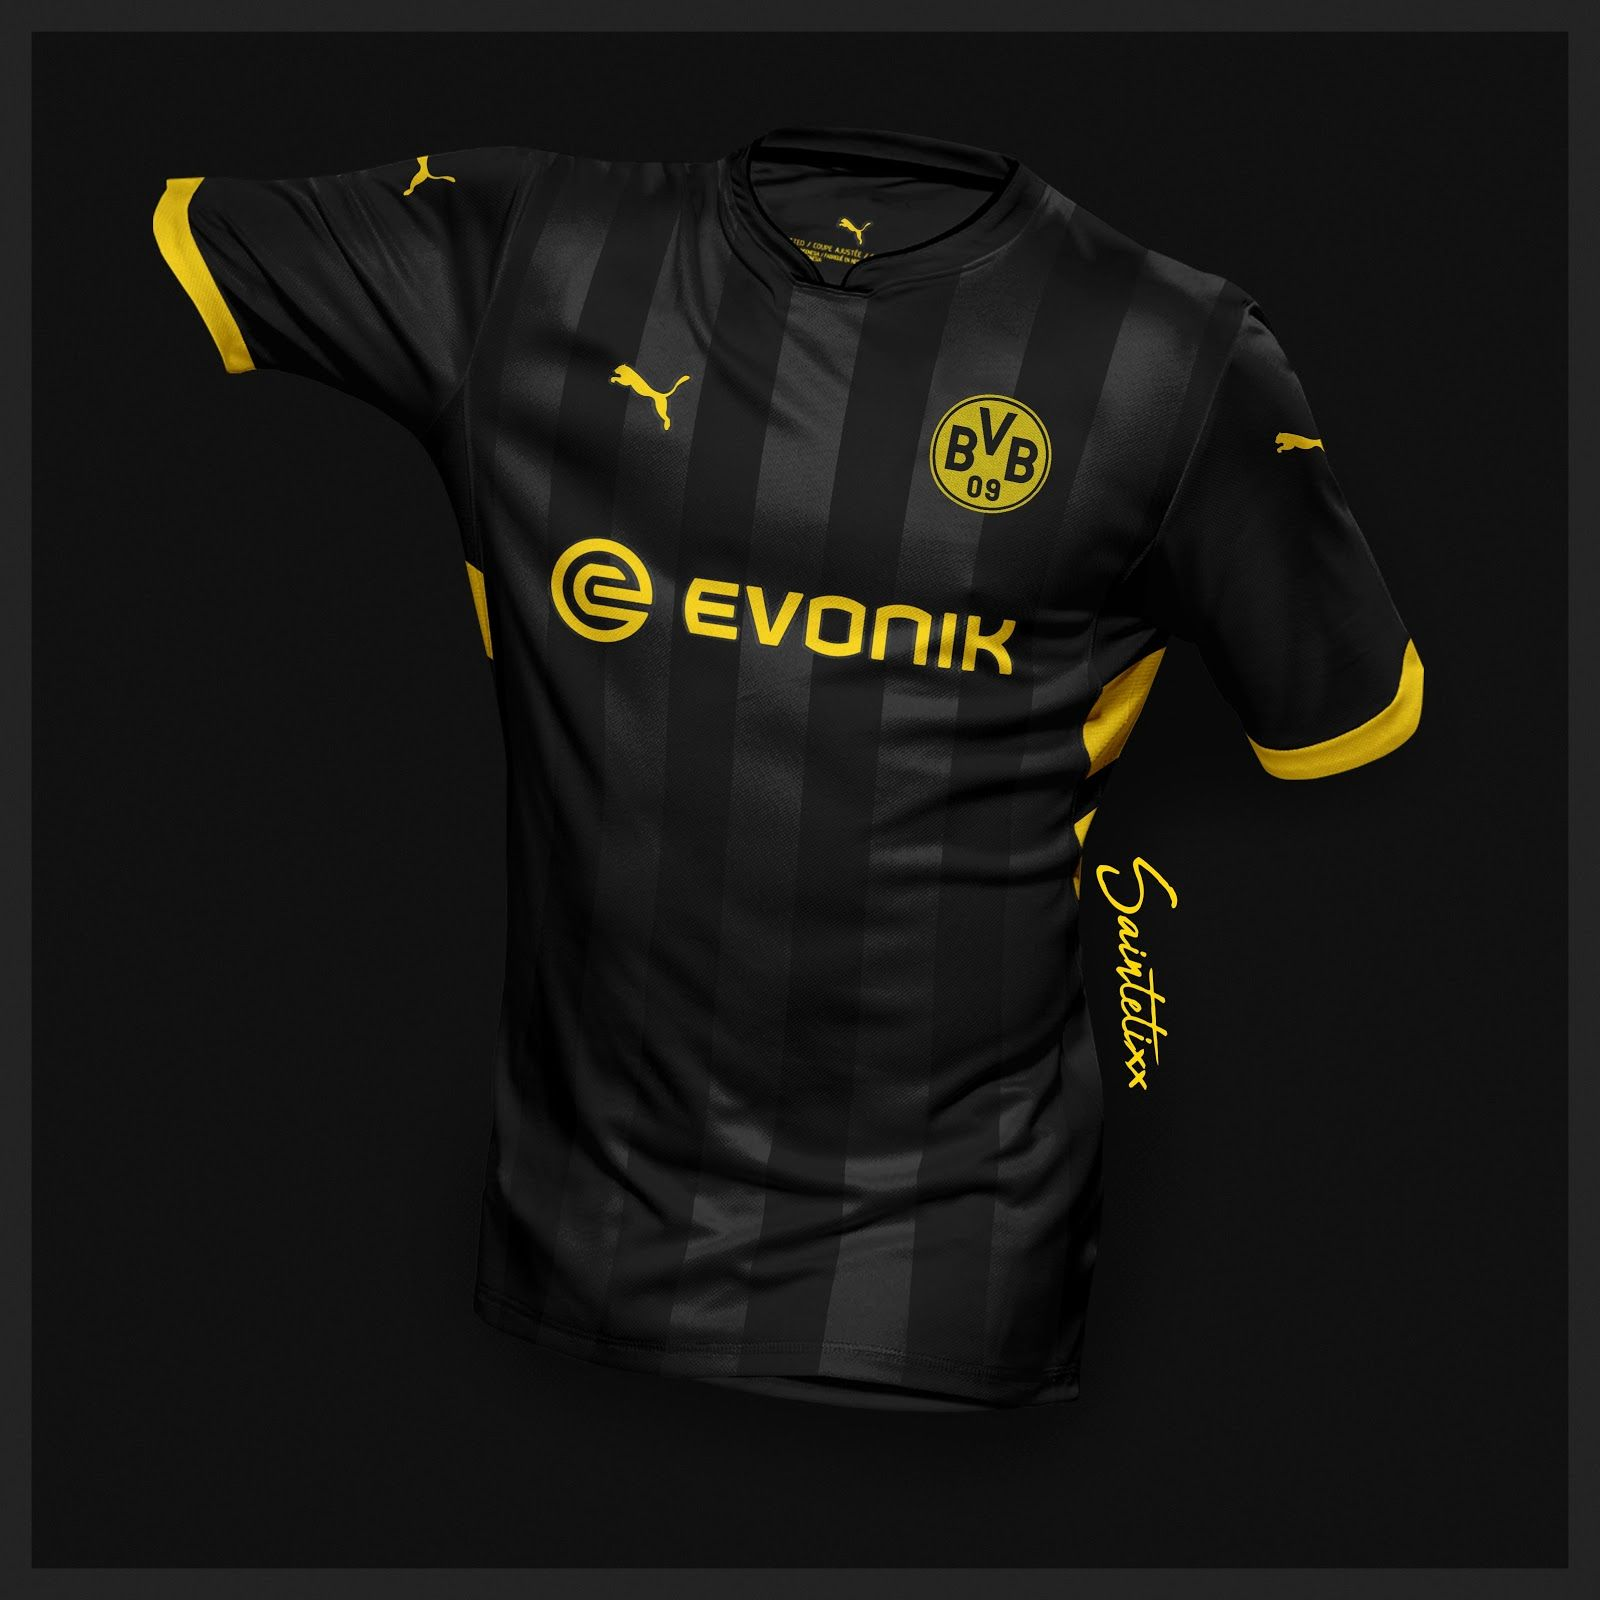 Incredible Puma Borussia Dortmund 19 20 Home Away Third Concept Kits By Saintetixx Footy Headlines Camisas De Futebol Camisa Borussia Camisa De Futebol